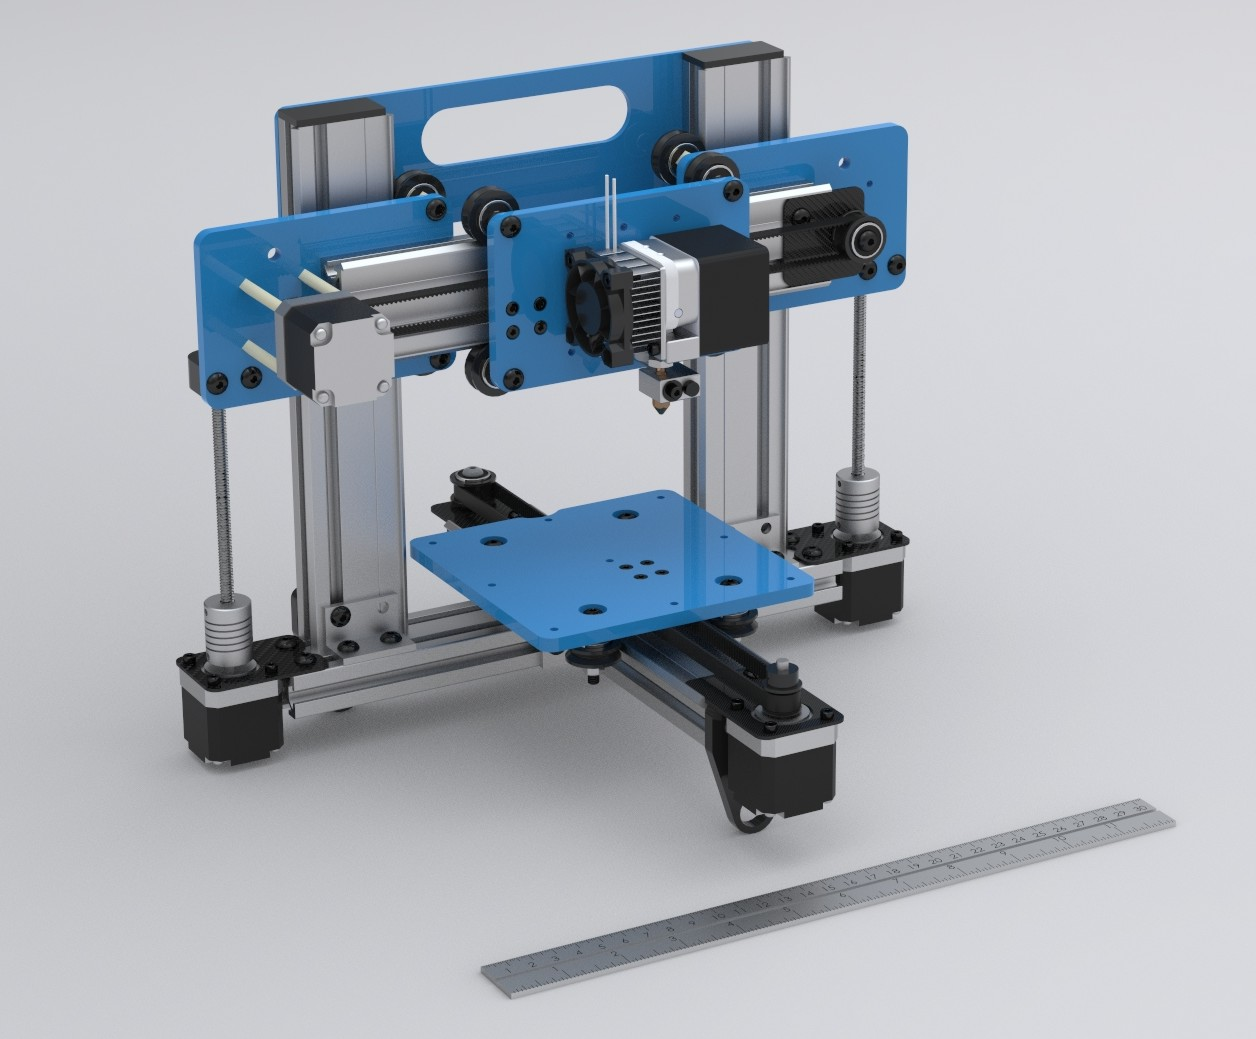 A 3d printer built with makerslide ponoko ponoko for 3d printer build plans